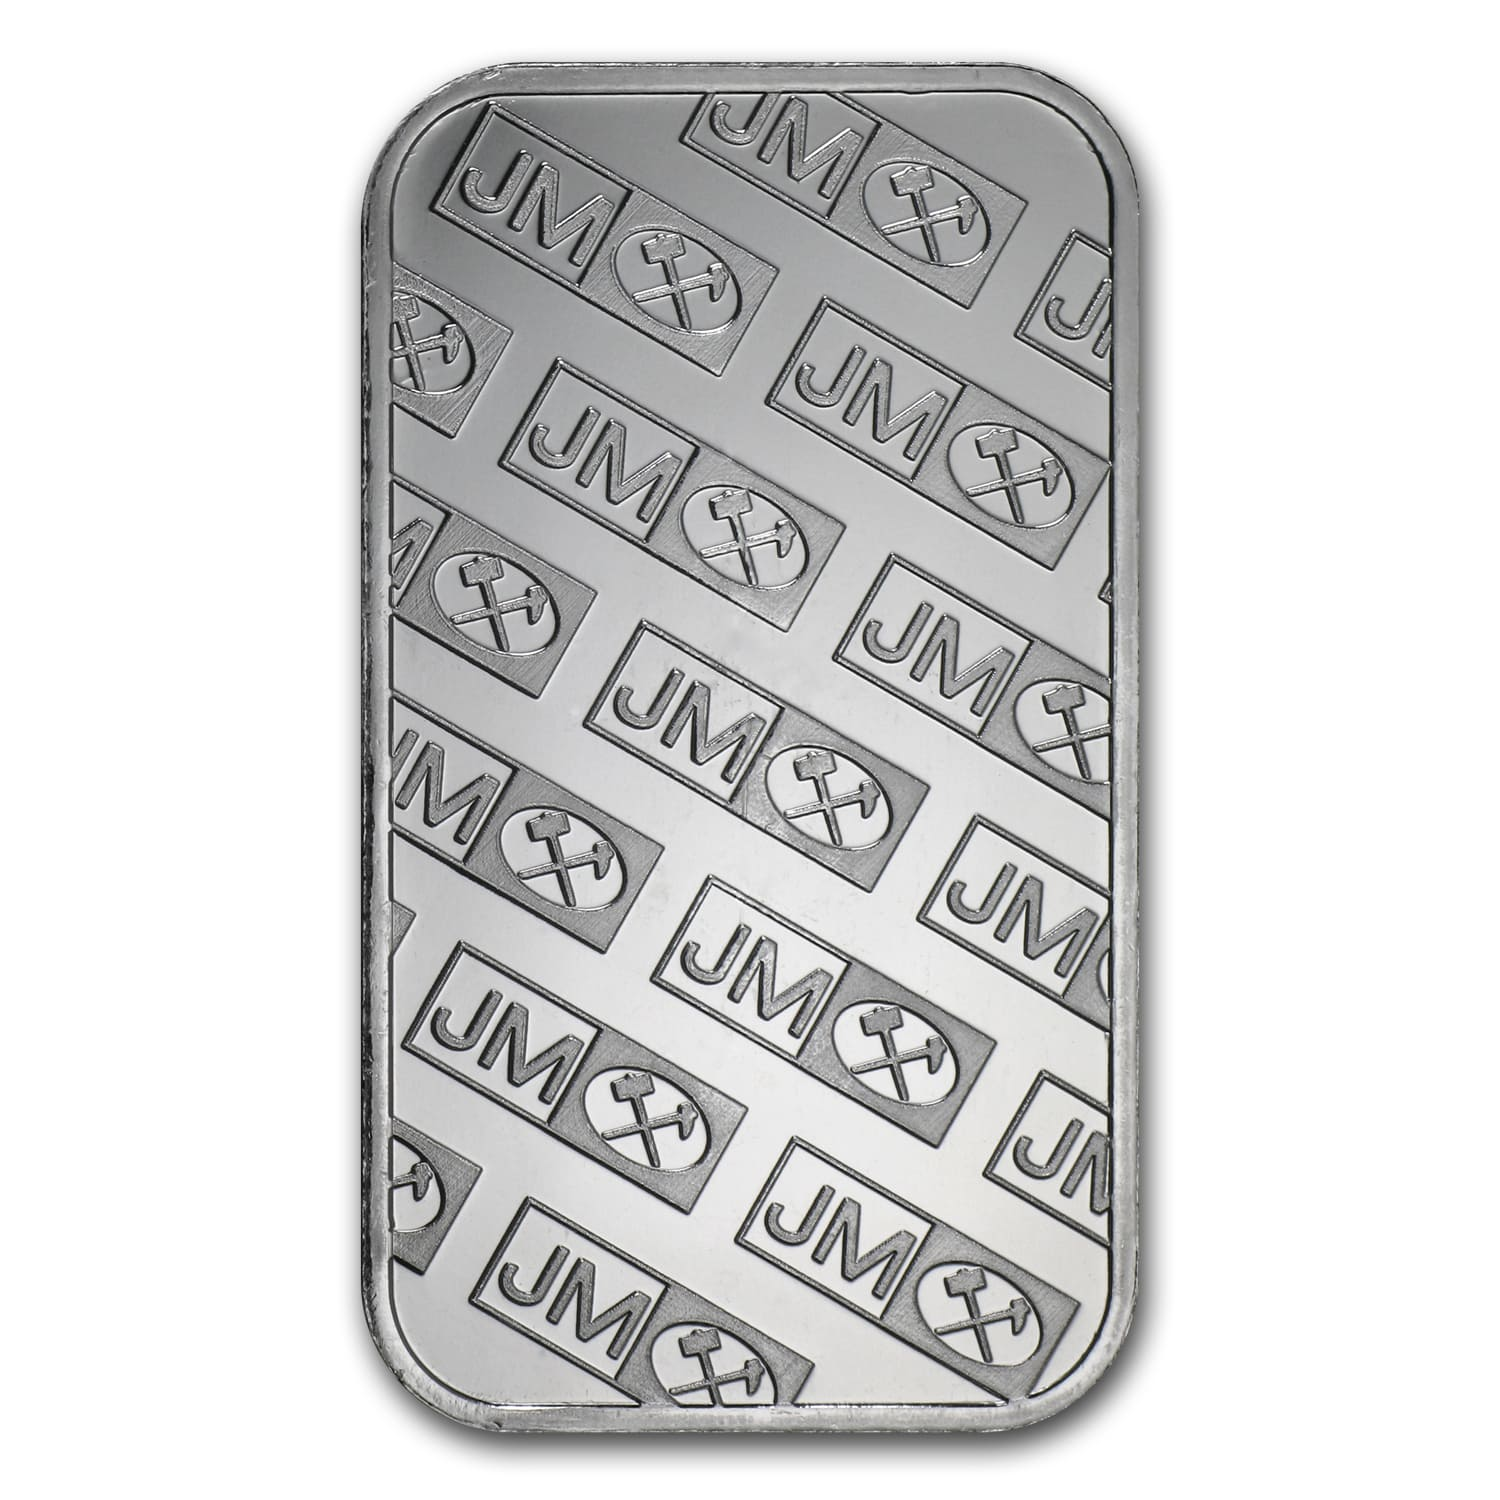 1 oz Silver Bar - Johnson Matthey (New JM Logo Reverse)